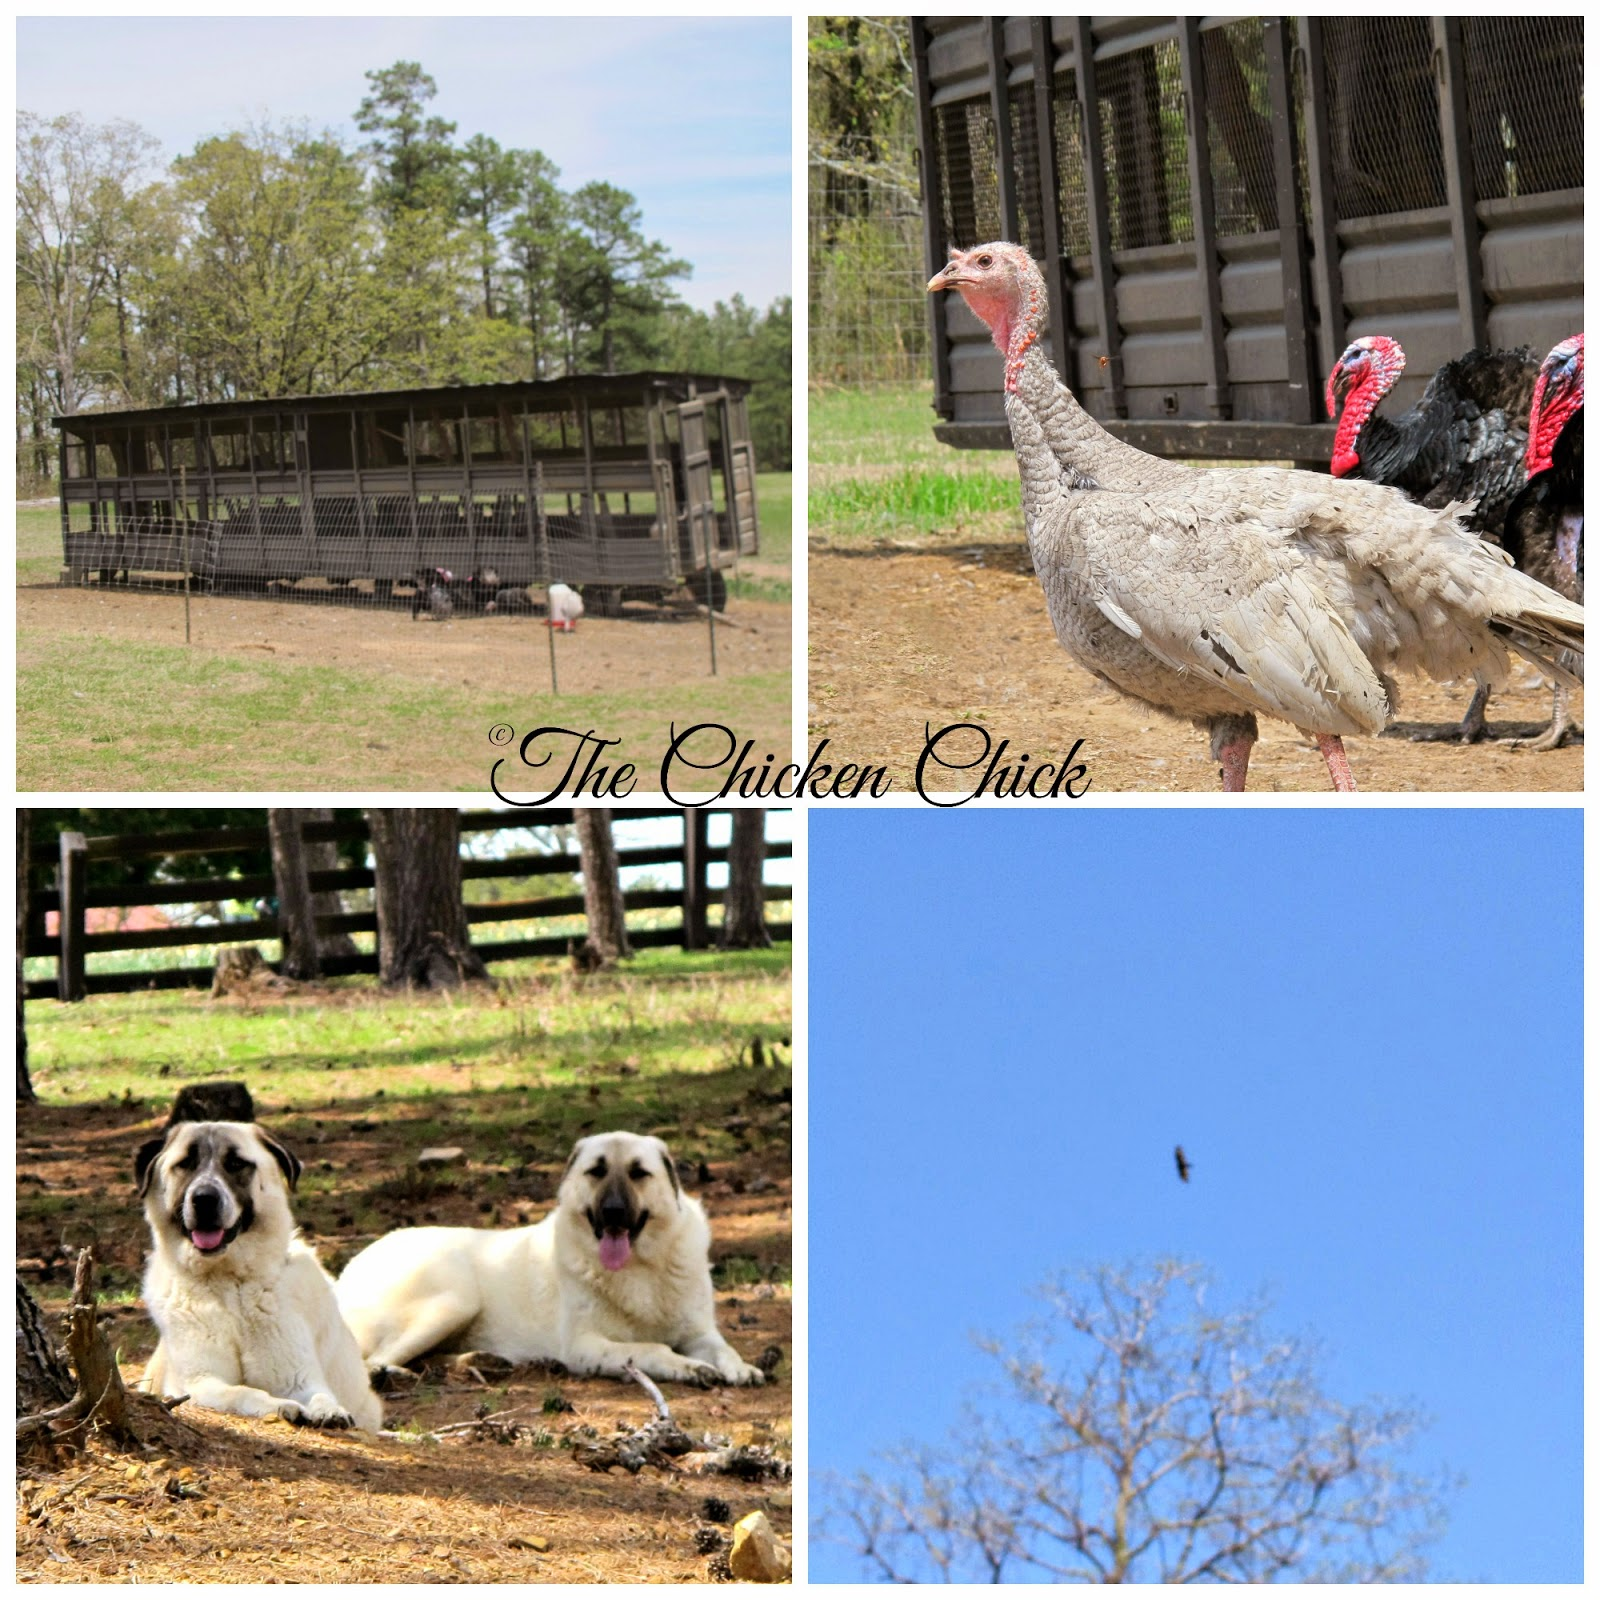 The turkey trailer, Anatolian Shepherds, turkeys and a raptor looking for lunch at P Allen Smith's Moss Mountain Farm